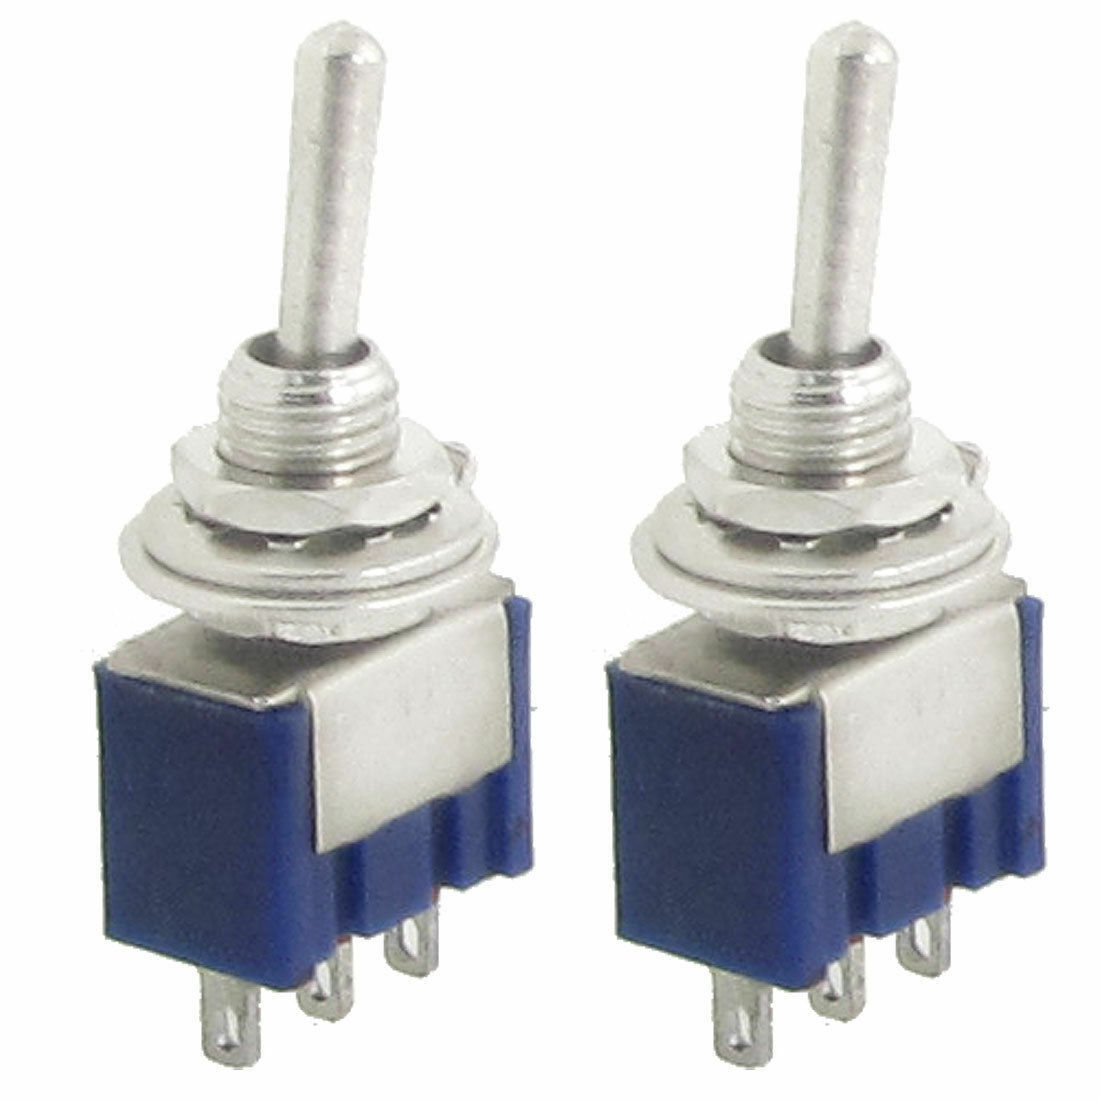 2 Pcs 125v 6a On Way Spdt 3 Terminals Toggle Switch Car Dash For 1 Of 1free Shipping See More